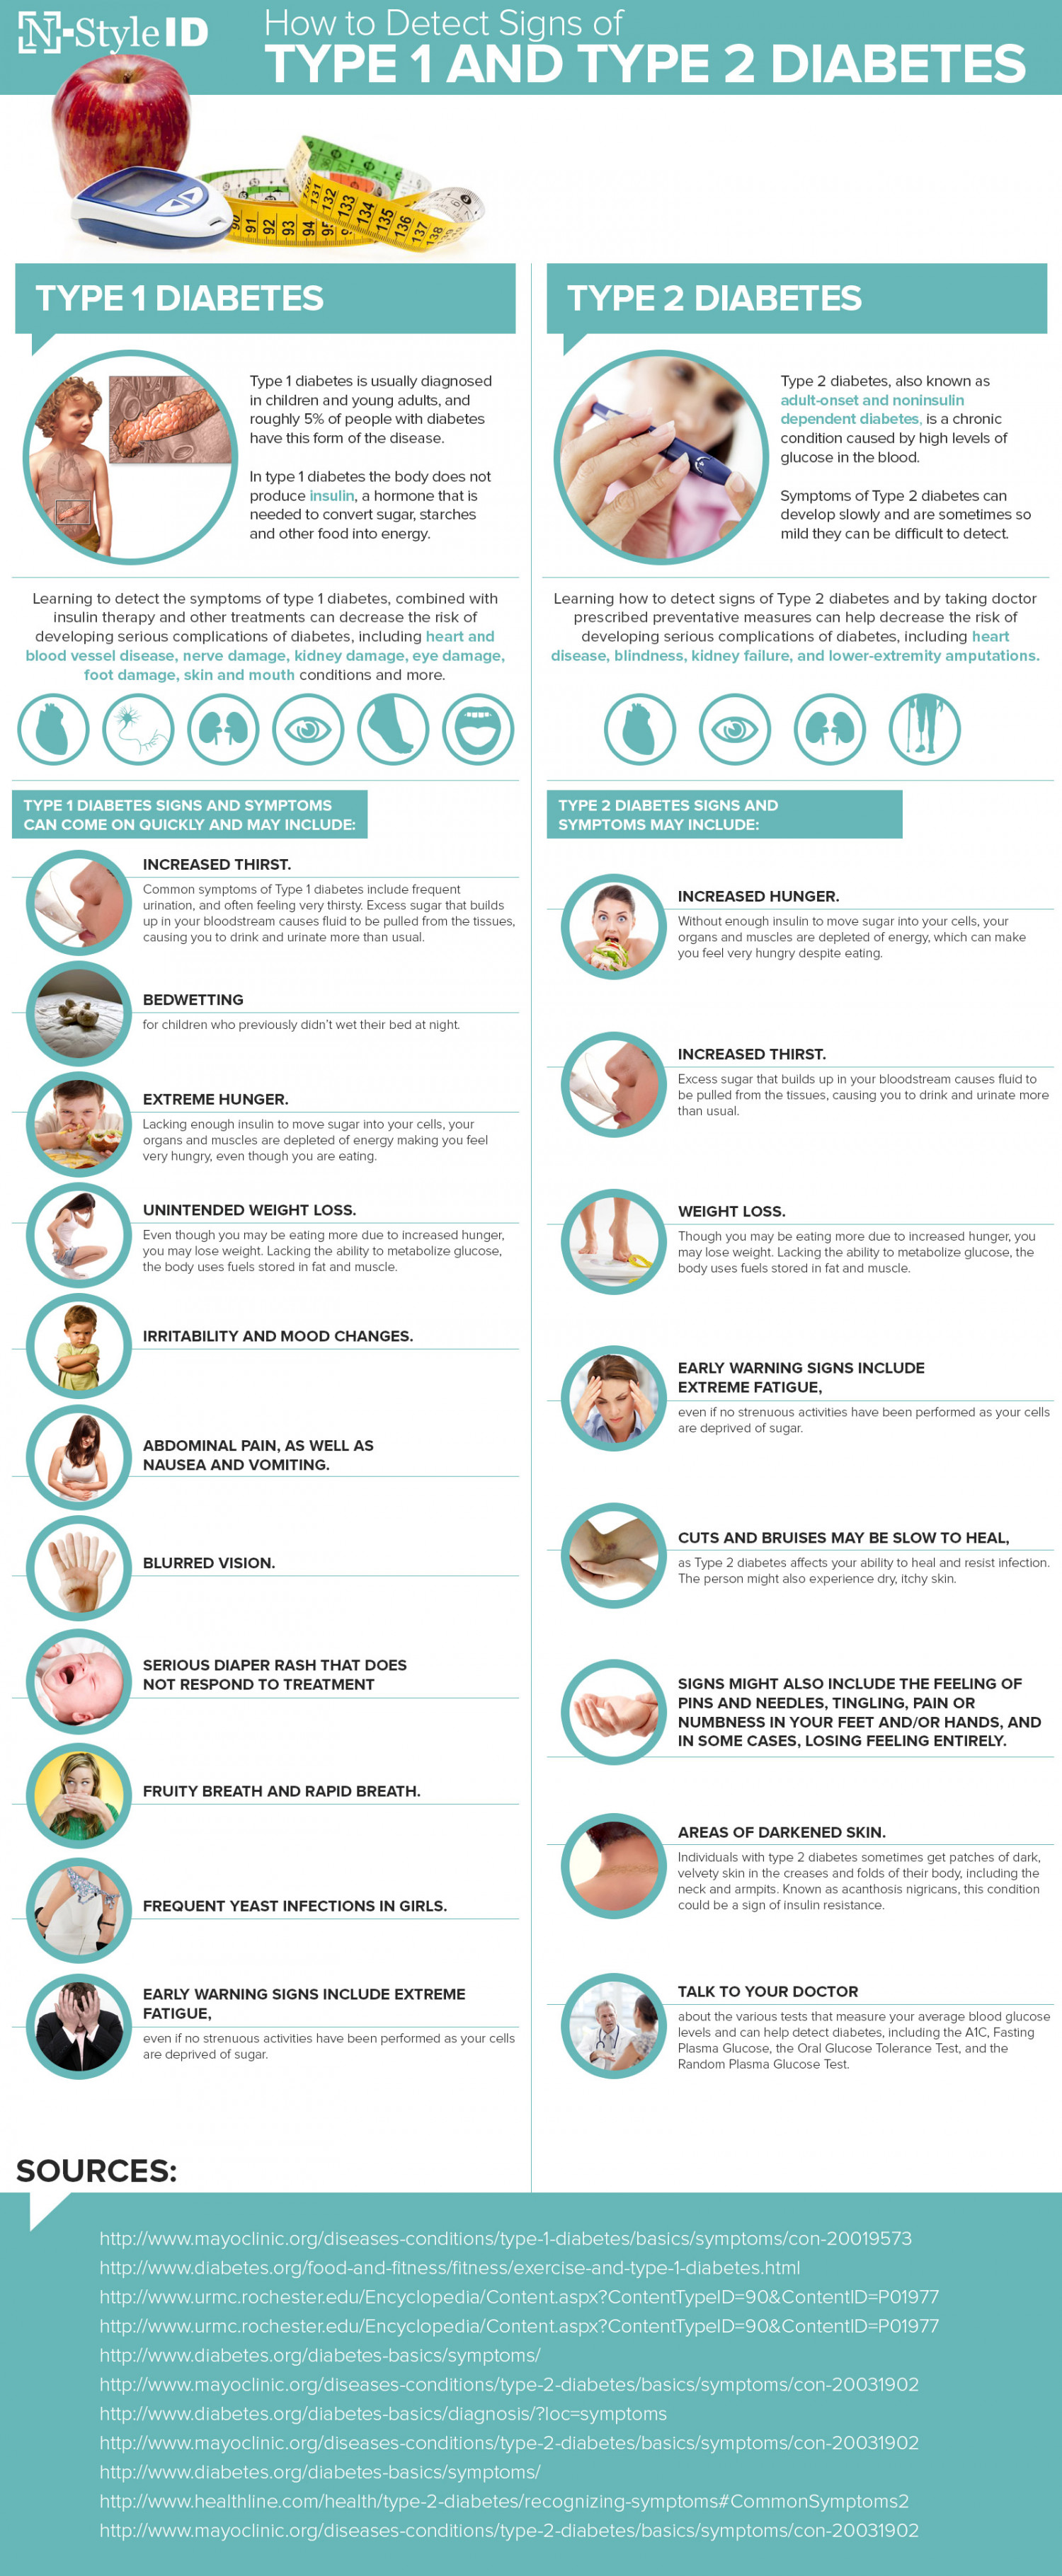 How to Detect Signs of Type 1 and Type 2 Diabetes Infographic